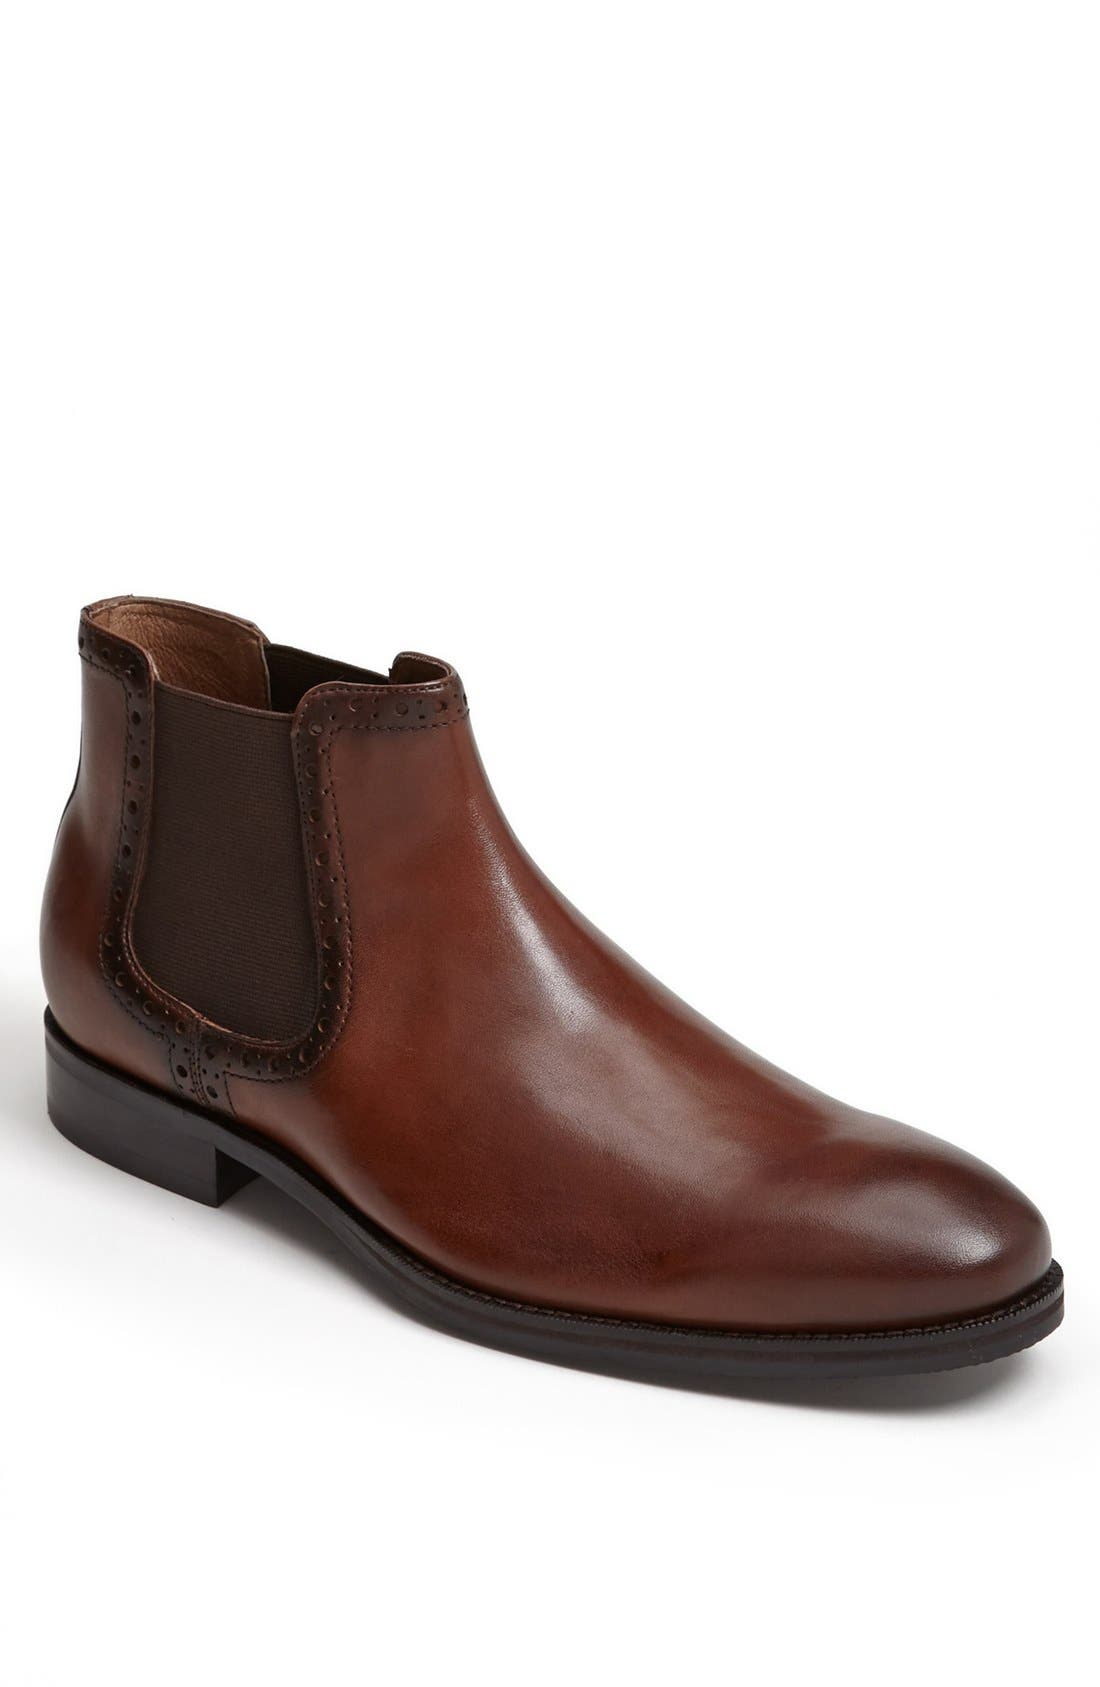 Main Image - Johnston & Murphy 'Tyndall' Chelsea Boot (Online Only)